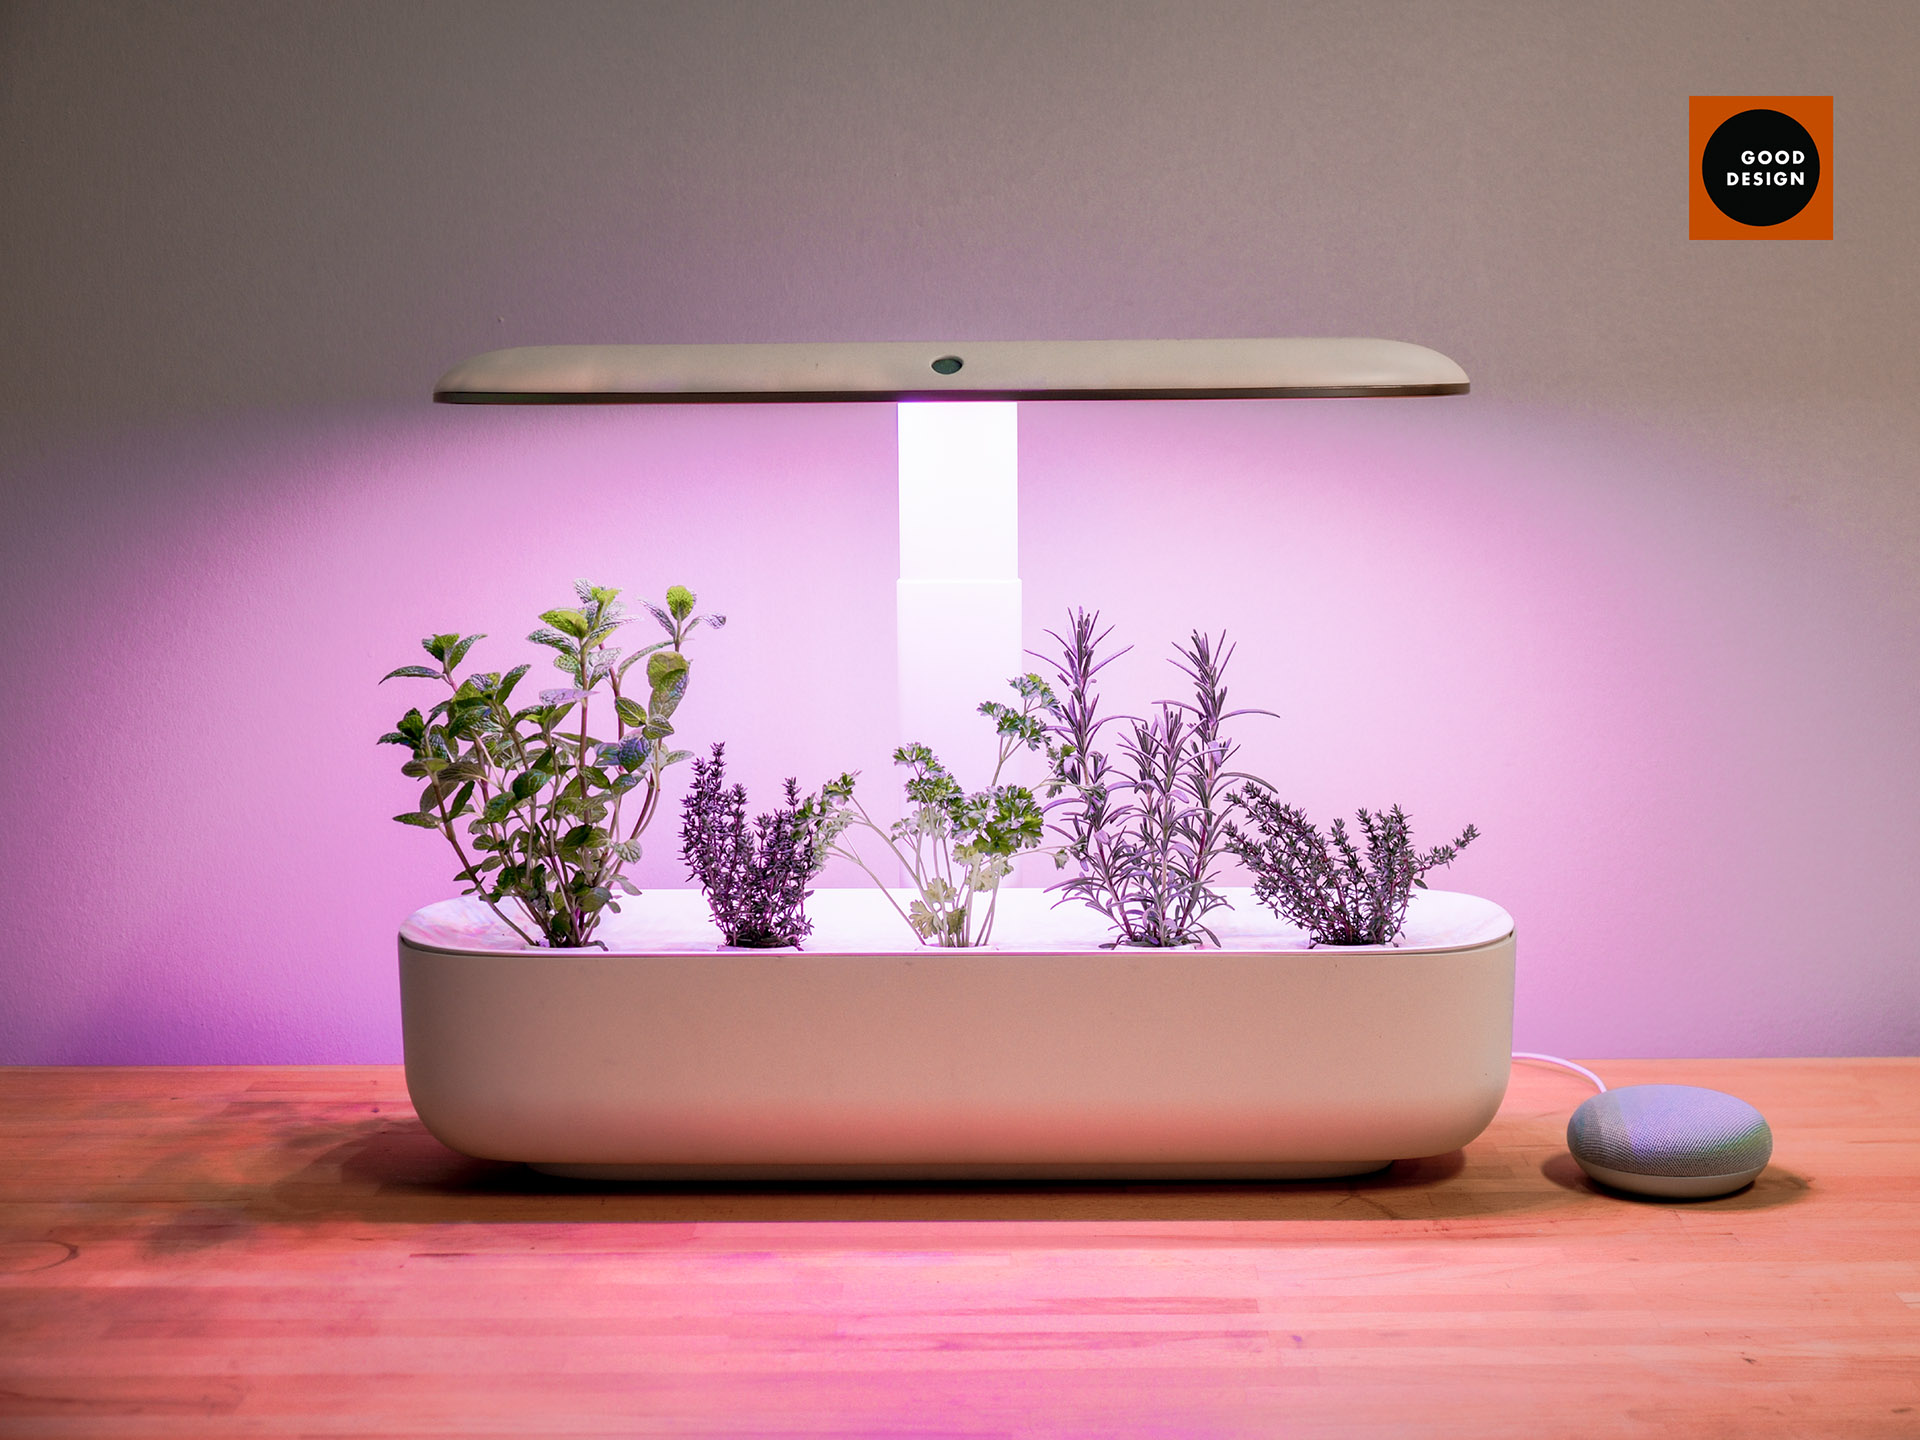 The AVA Smart Garden on a wooden countertop with a seafoam coloured Google Nest Mini. The AVA Smart Garden is lit purple and is growing an assortment of herbs.